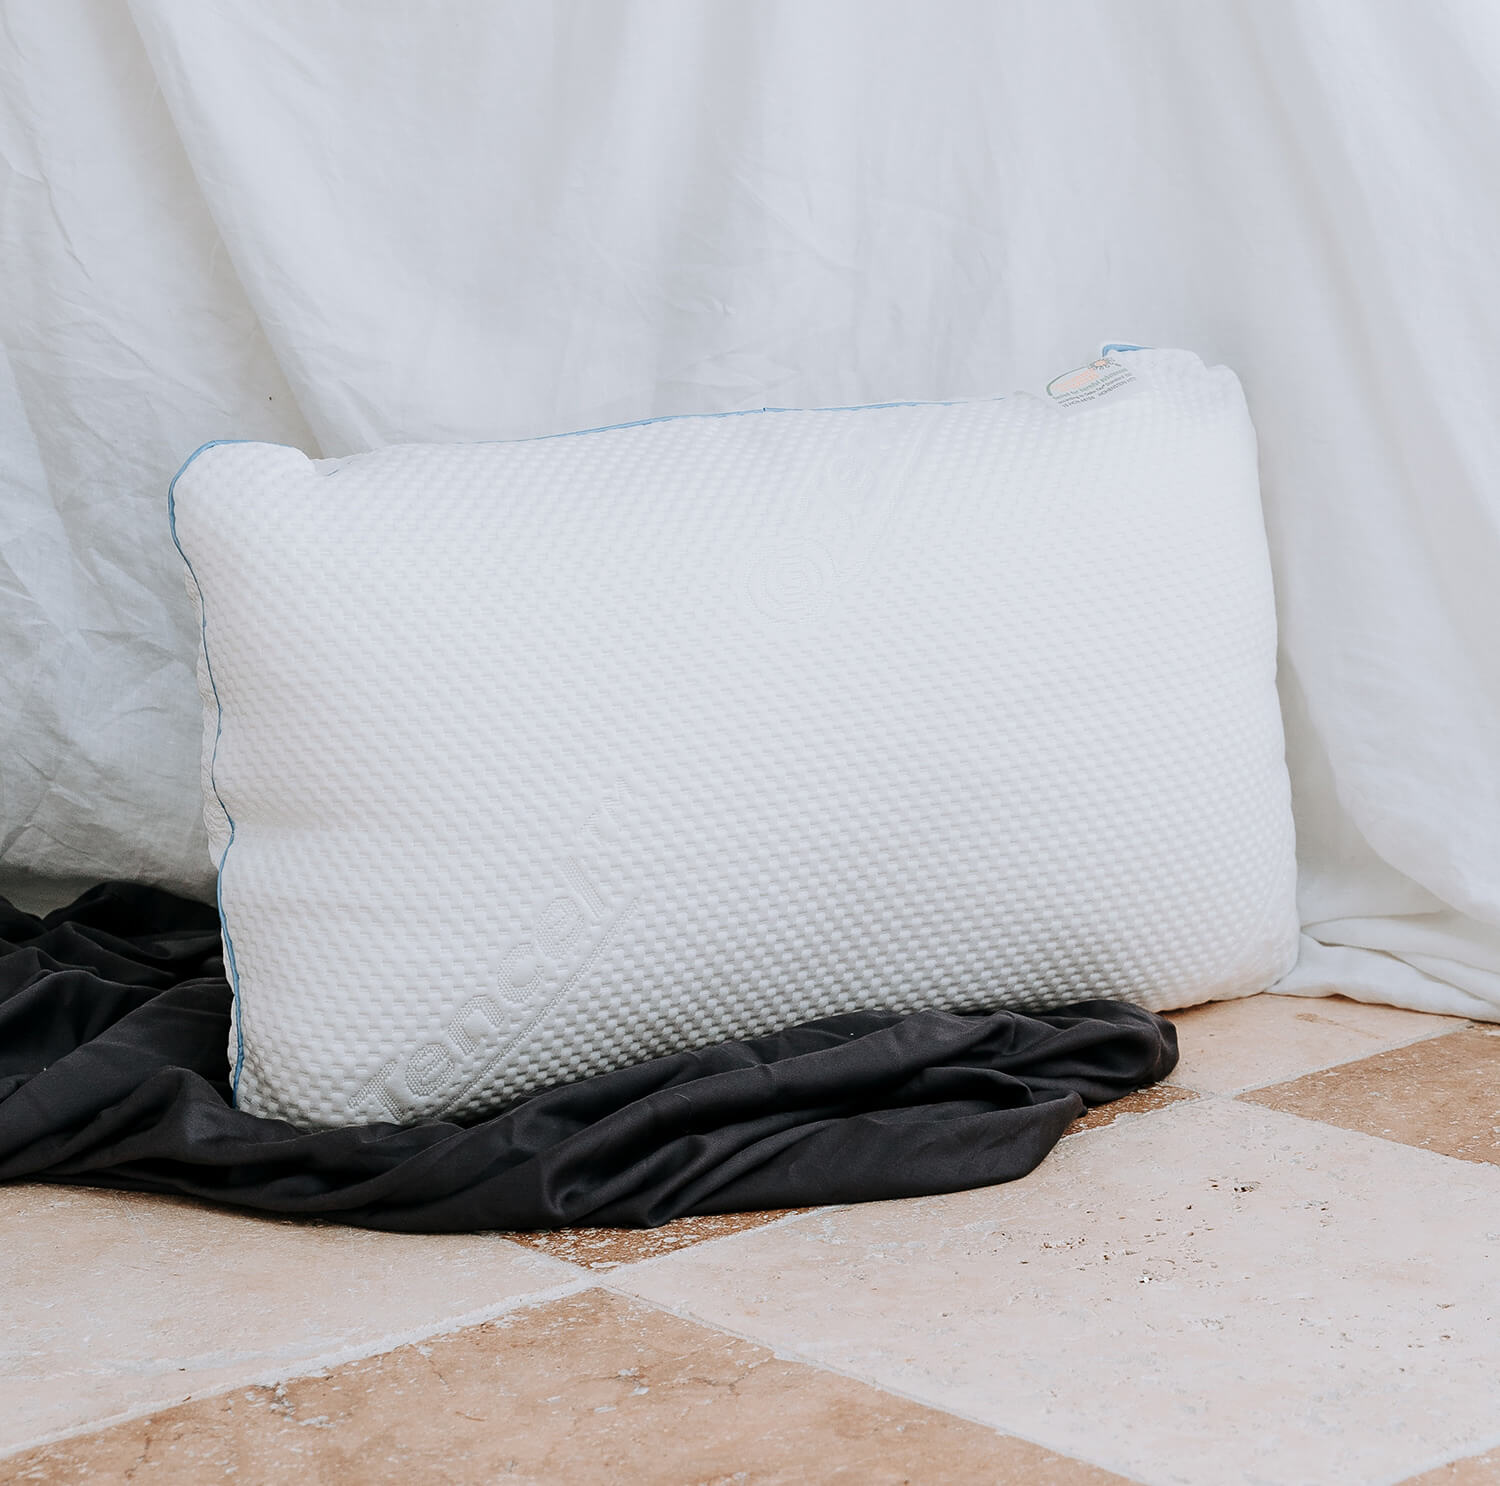 Ingeo Corn Pillow - Cooltouch Dual Surface